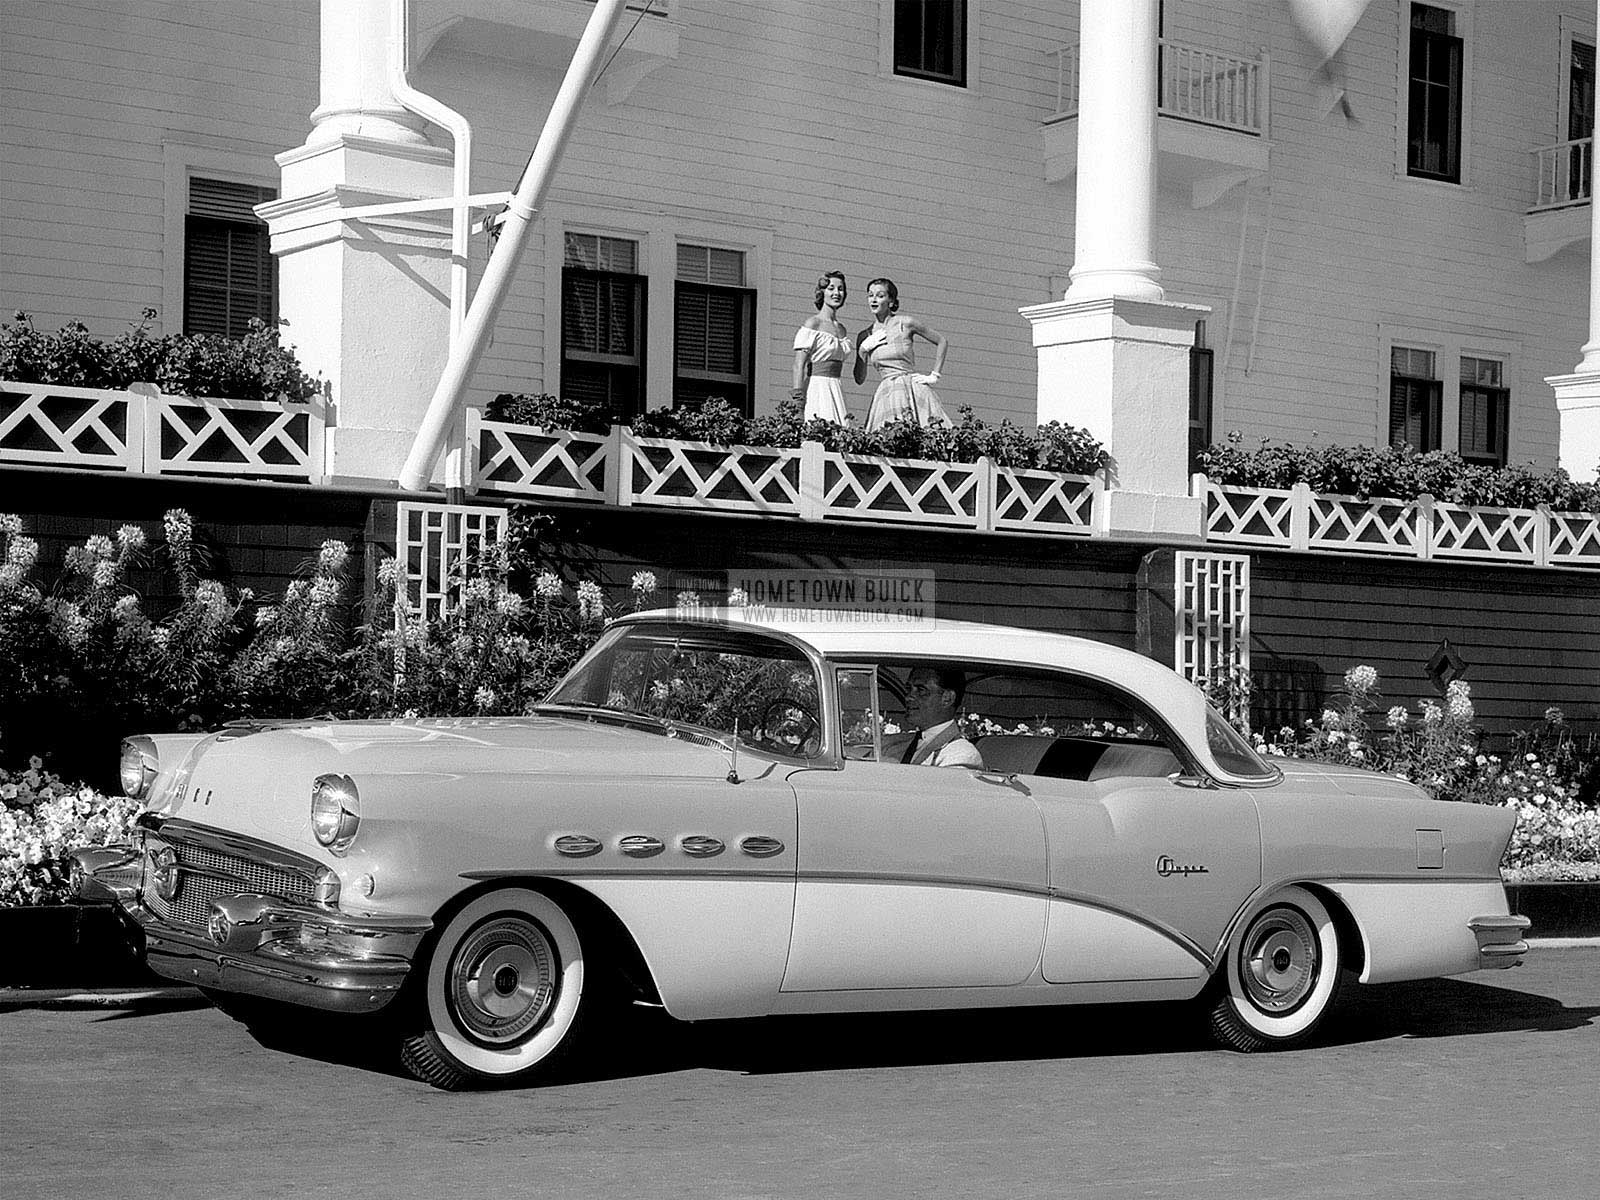 1956 Buick Model Year